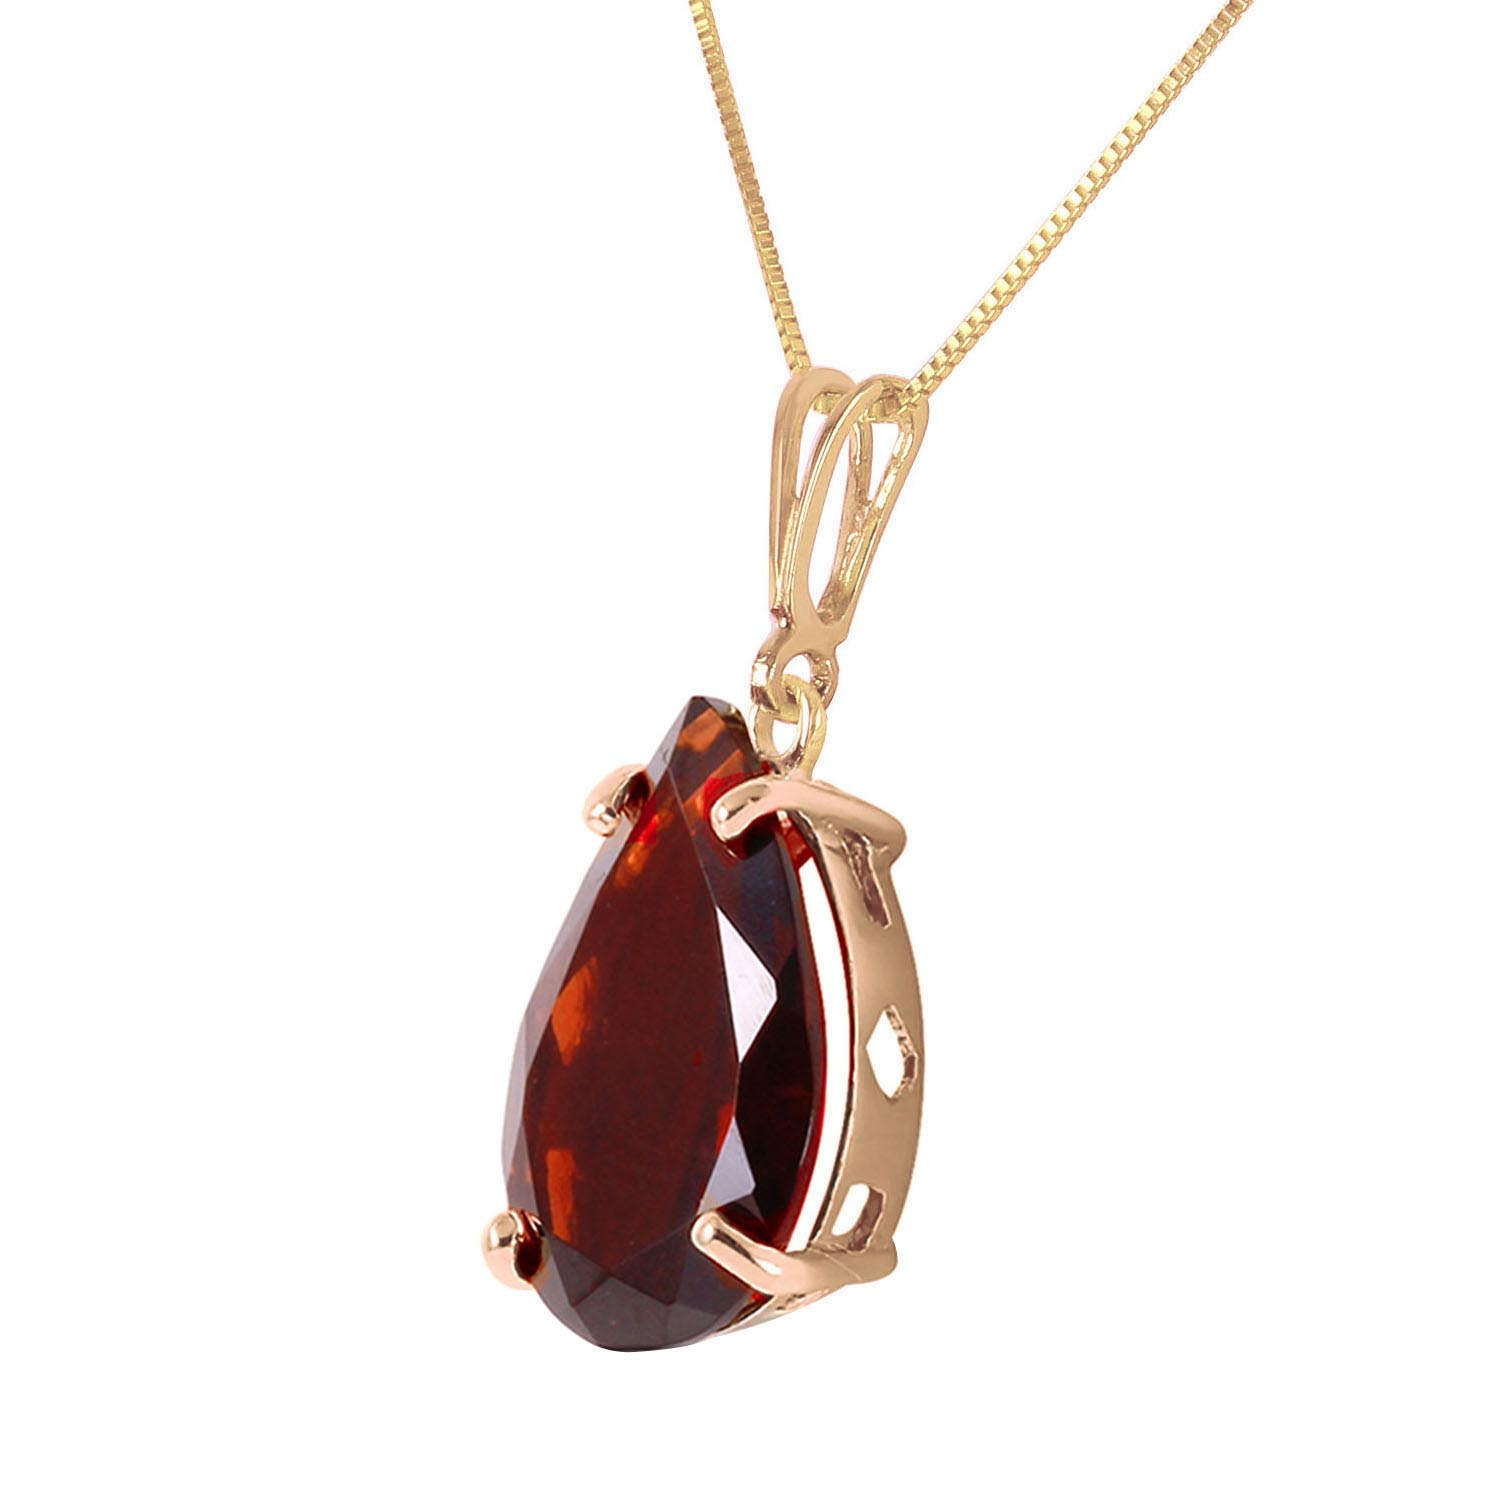 Pear Cut Garnet Pendant Necklace 5.0ct in 9ct Gold